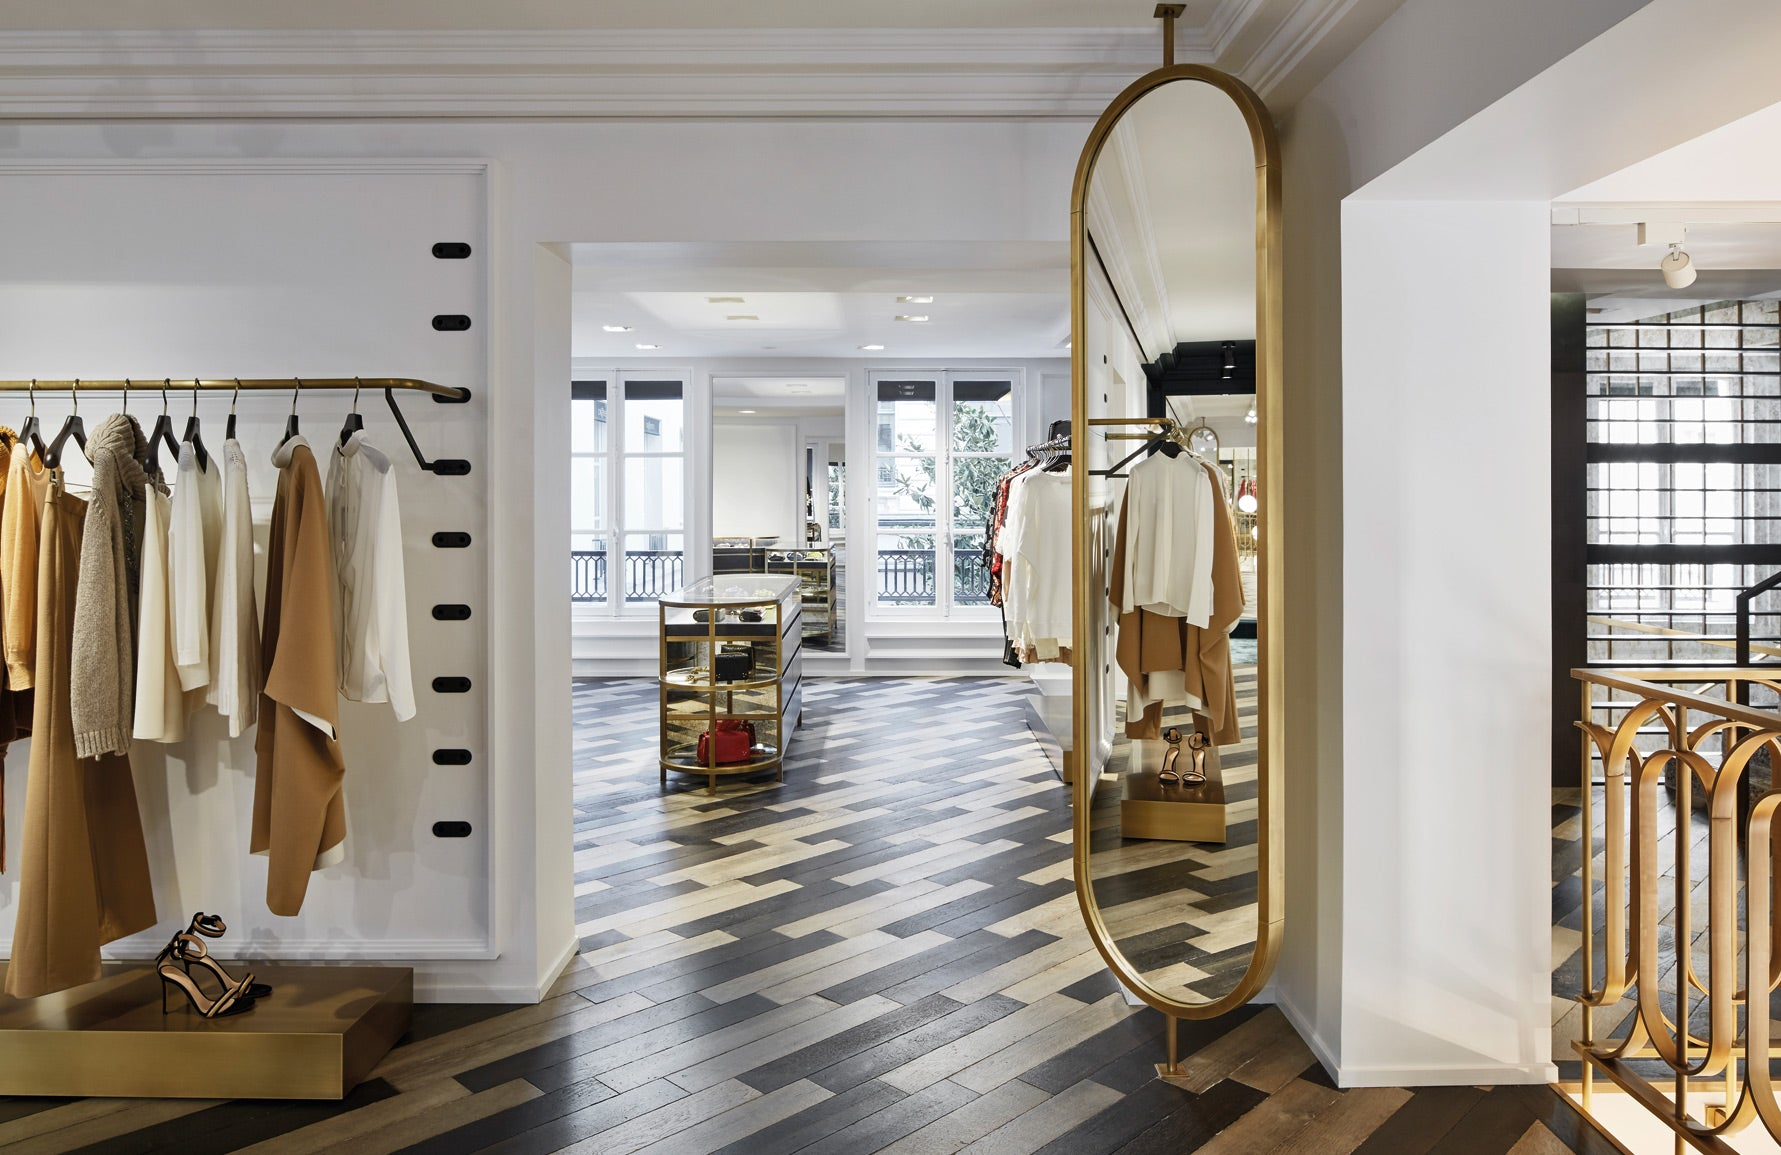 Luxury Retail Store Interior Designs We Want To Live In Luxdeco Com